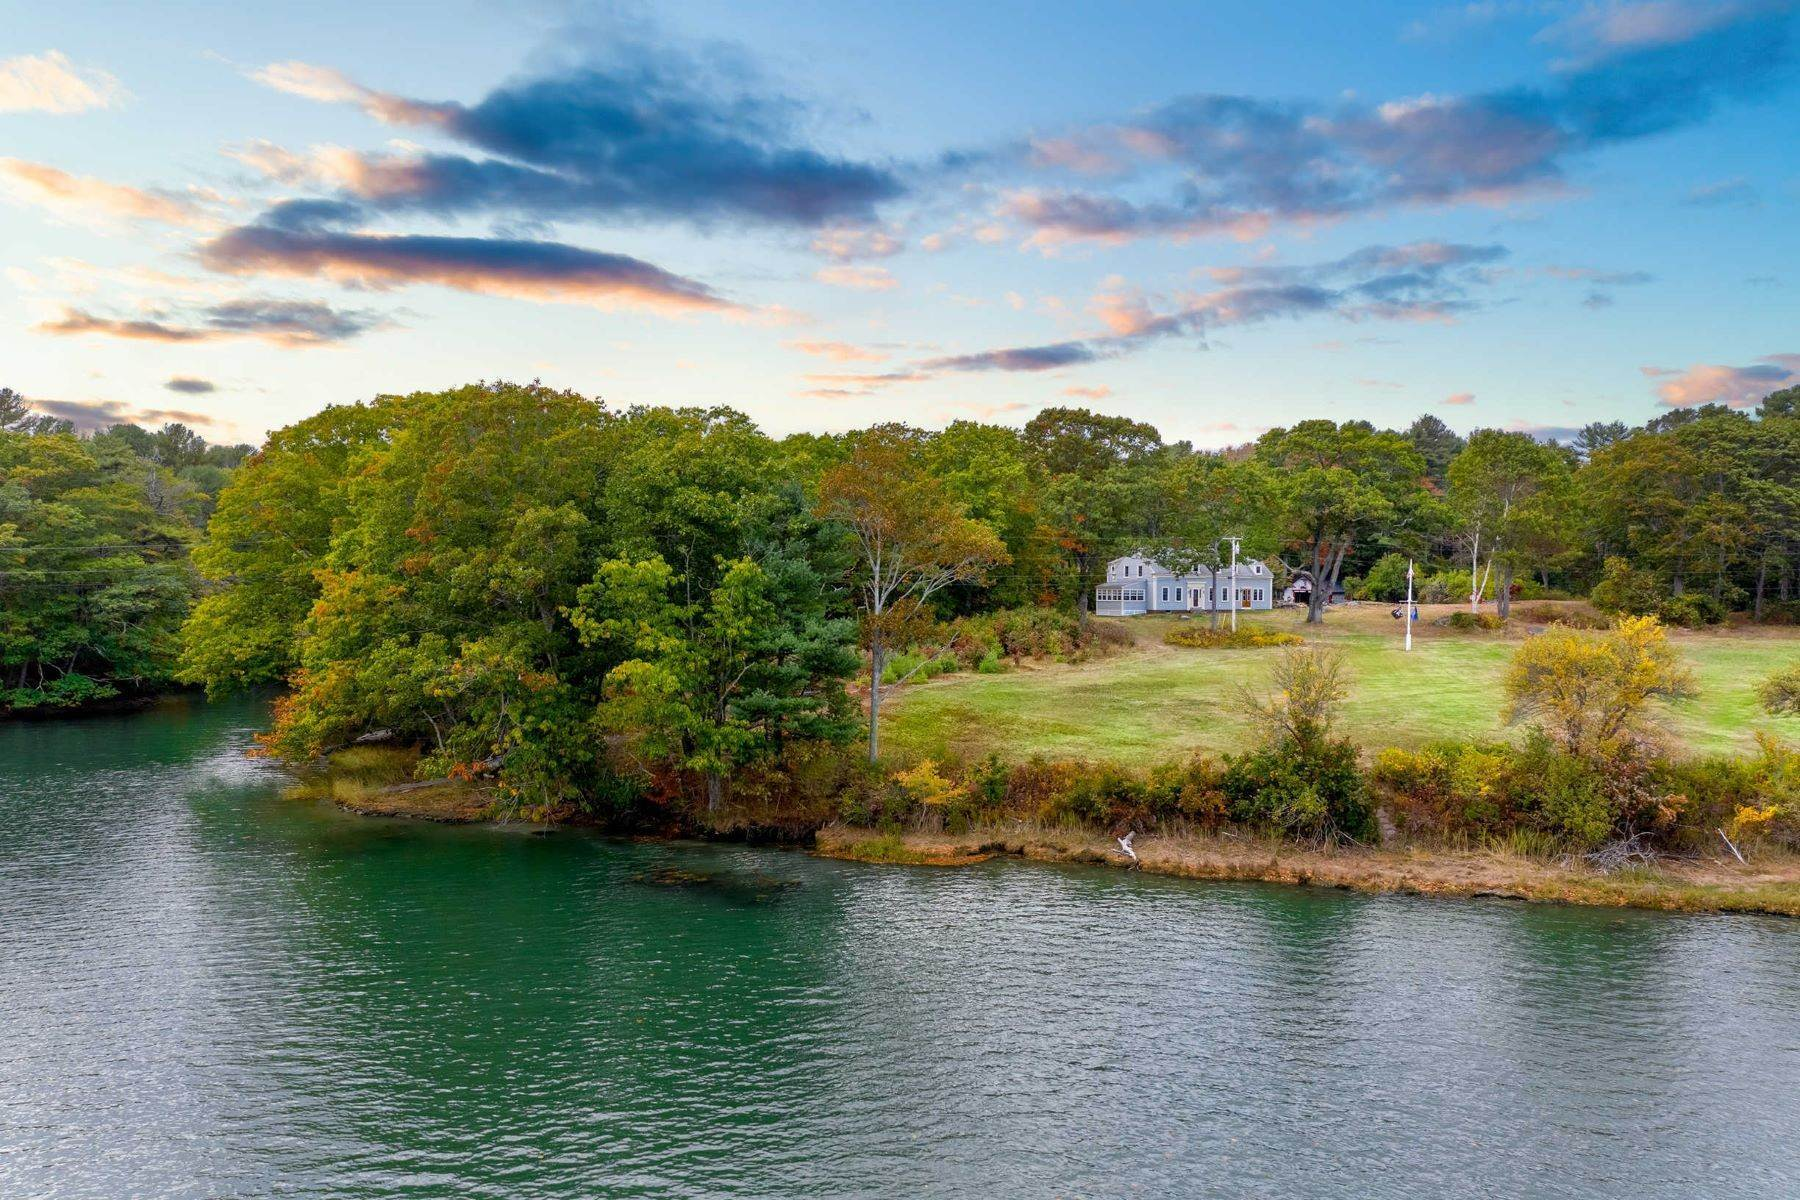 Single Family Homes for Sale at Sea River Oaks, Historic Riverfront Residence 51 River Locks Road, Kennebunk, ME 04043